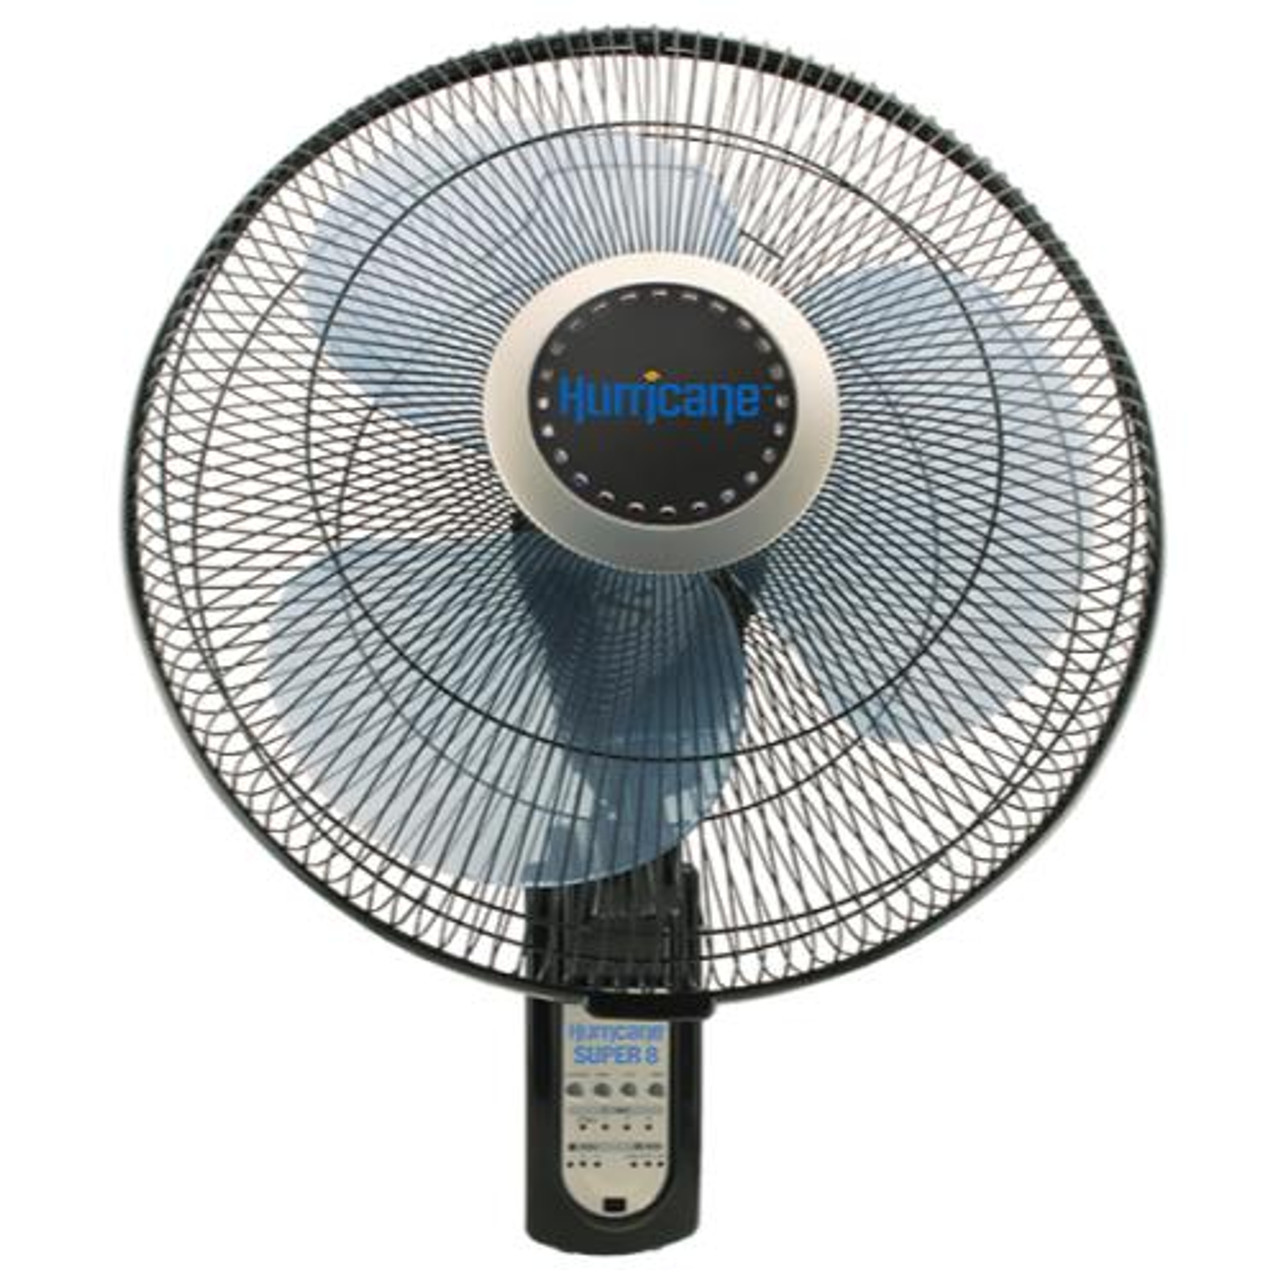 Hurricane Super 8 Oscillating Wall Mount Fan W Remote 16in Nhs Hydroponics